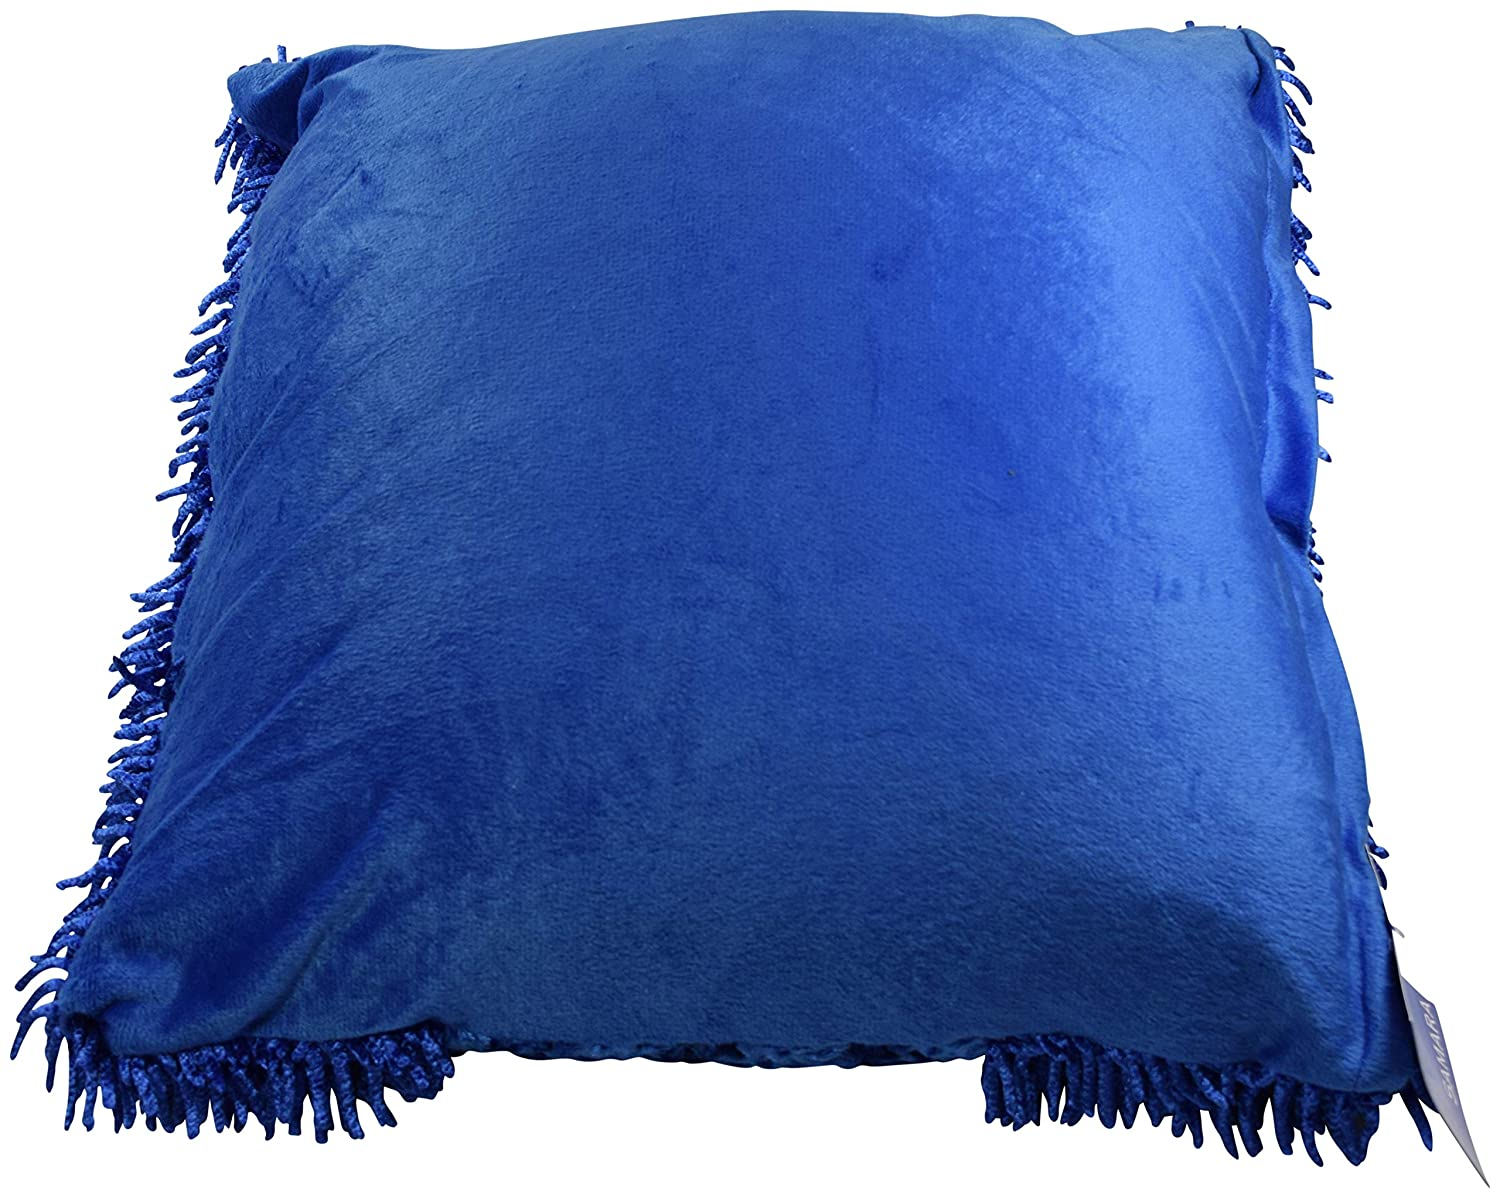 Estex Home Fashions Samara Fuzzy Throw Pillow with Patterned Design Perfect for a Couch or Bed